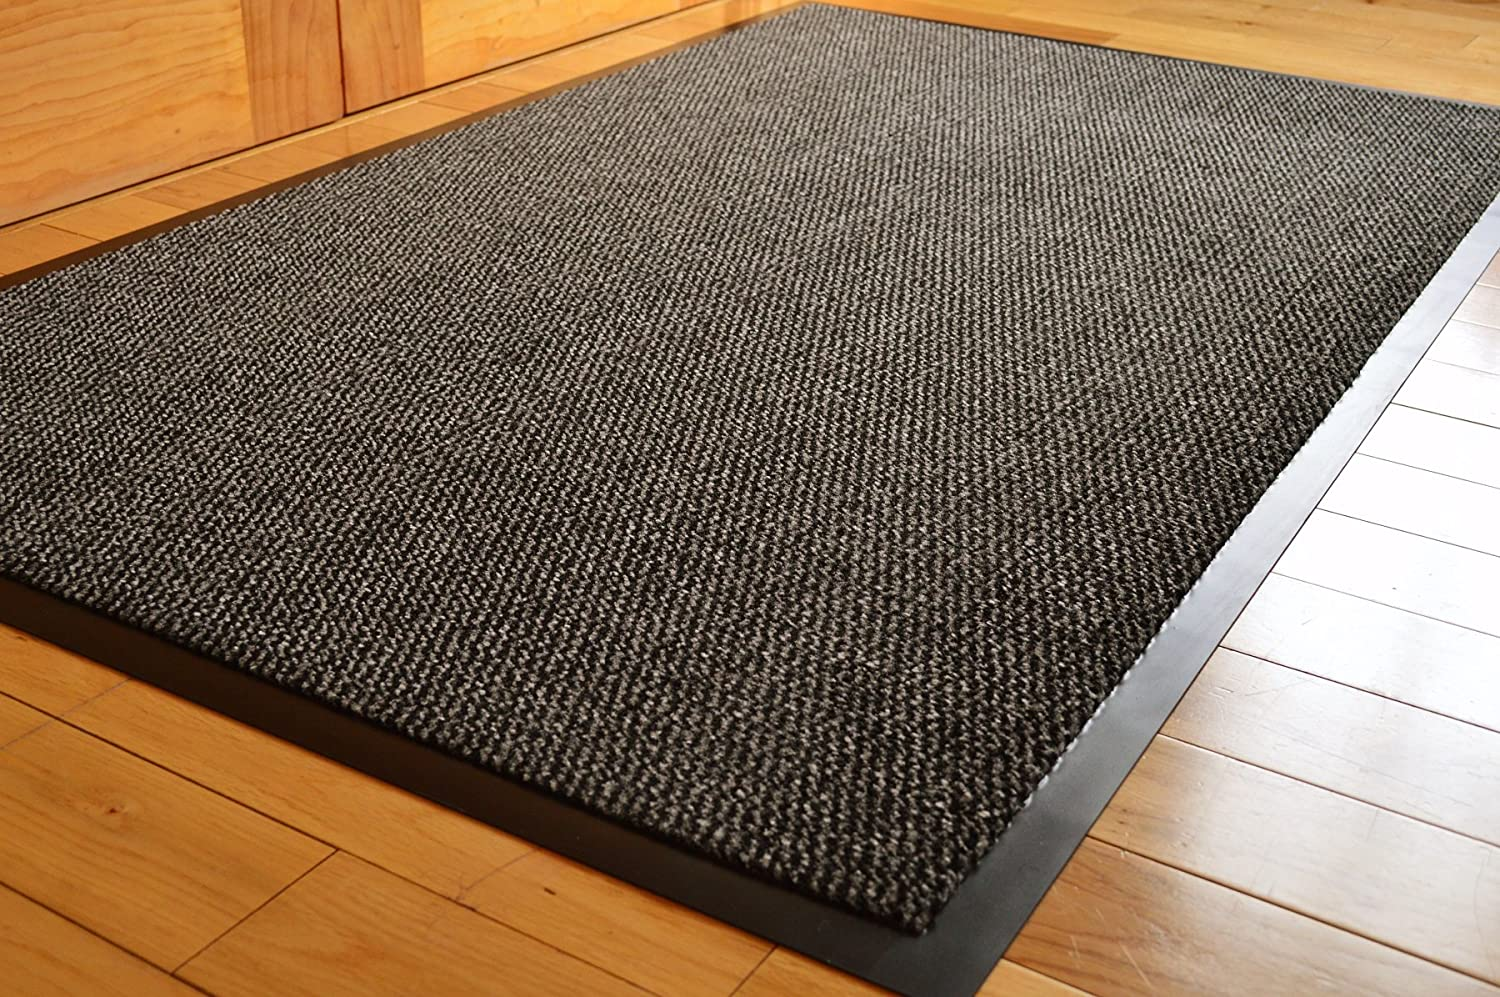 amazoncouk doormats  home accessories home  kitchen - big extra large grey and black barrier mat rubber edged heavy duty non slipkitchen entrance hall runner rug mats xcm (xft)